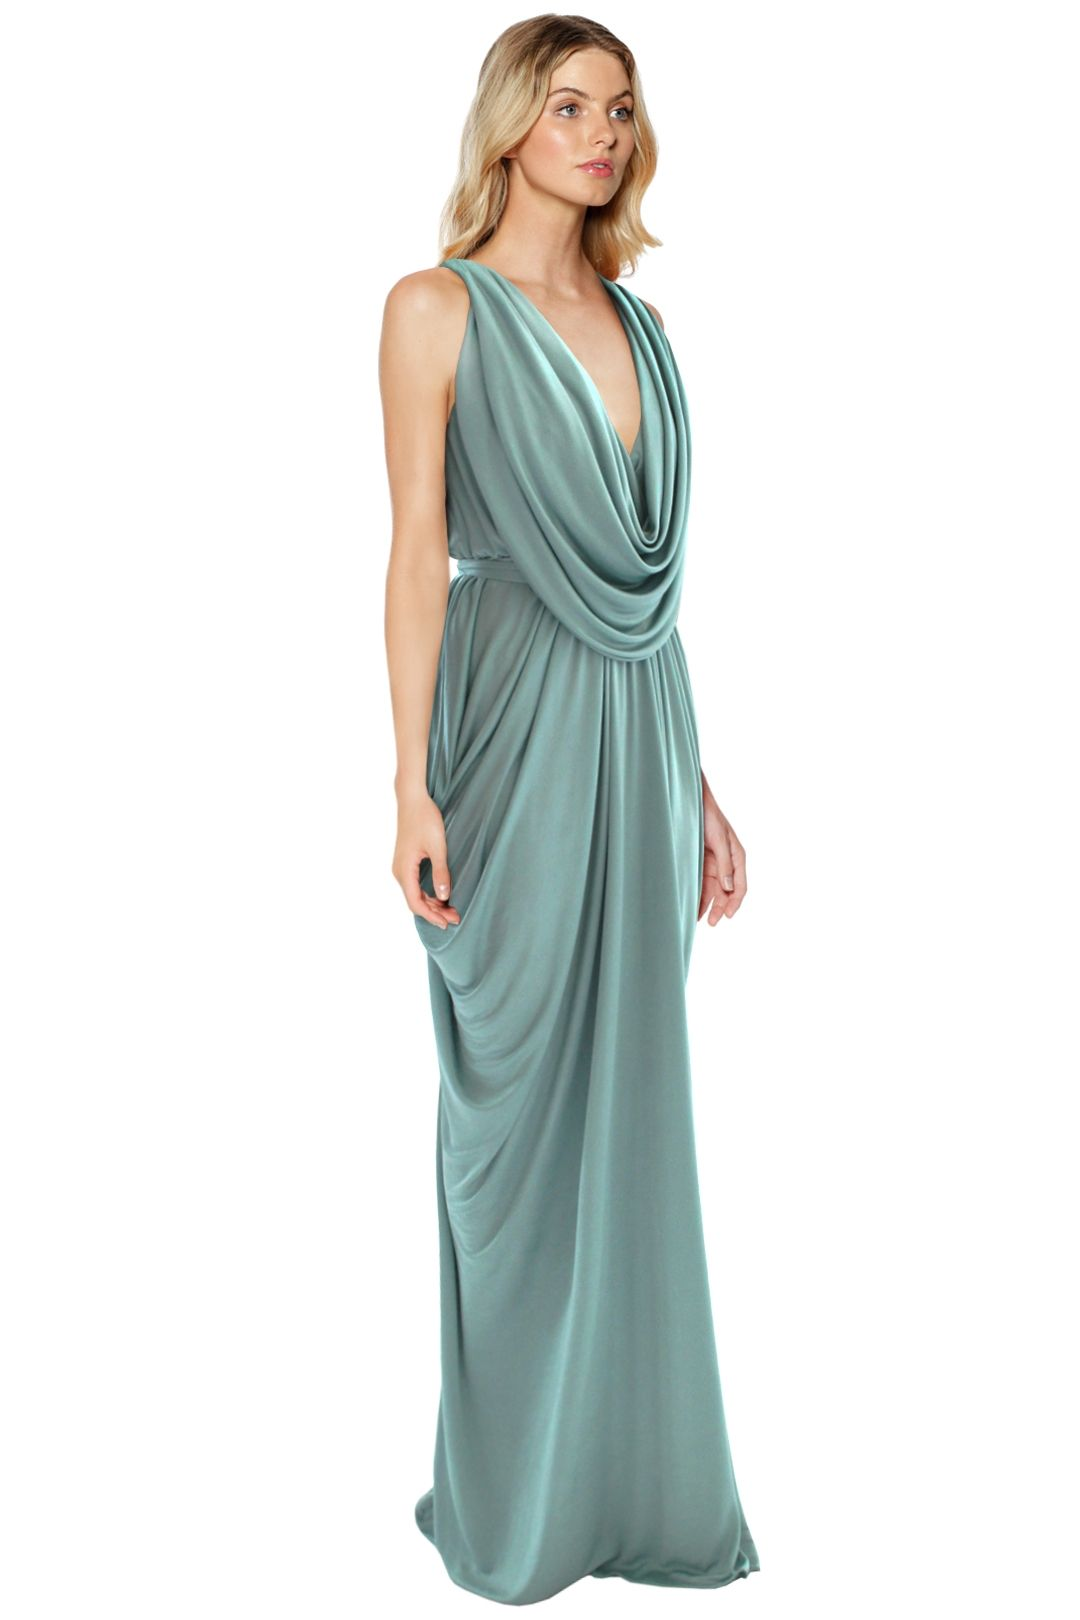 Sheike - Grecian Maxi Dress - Mint - Side